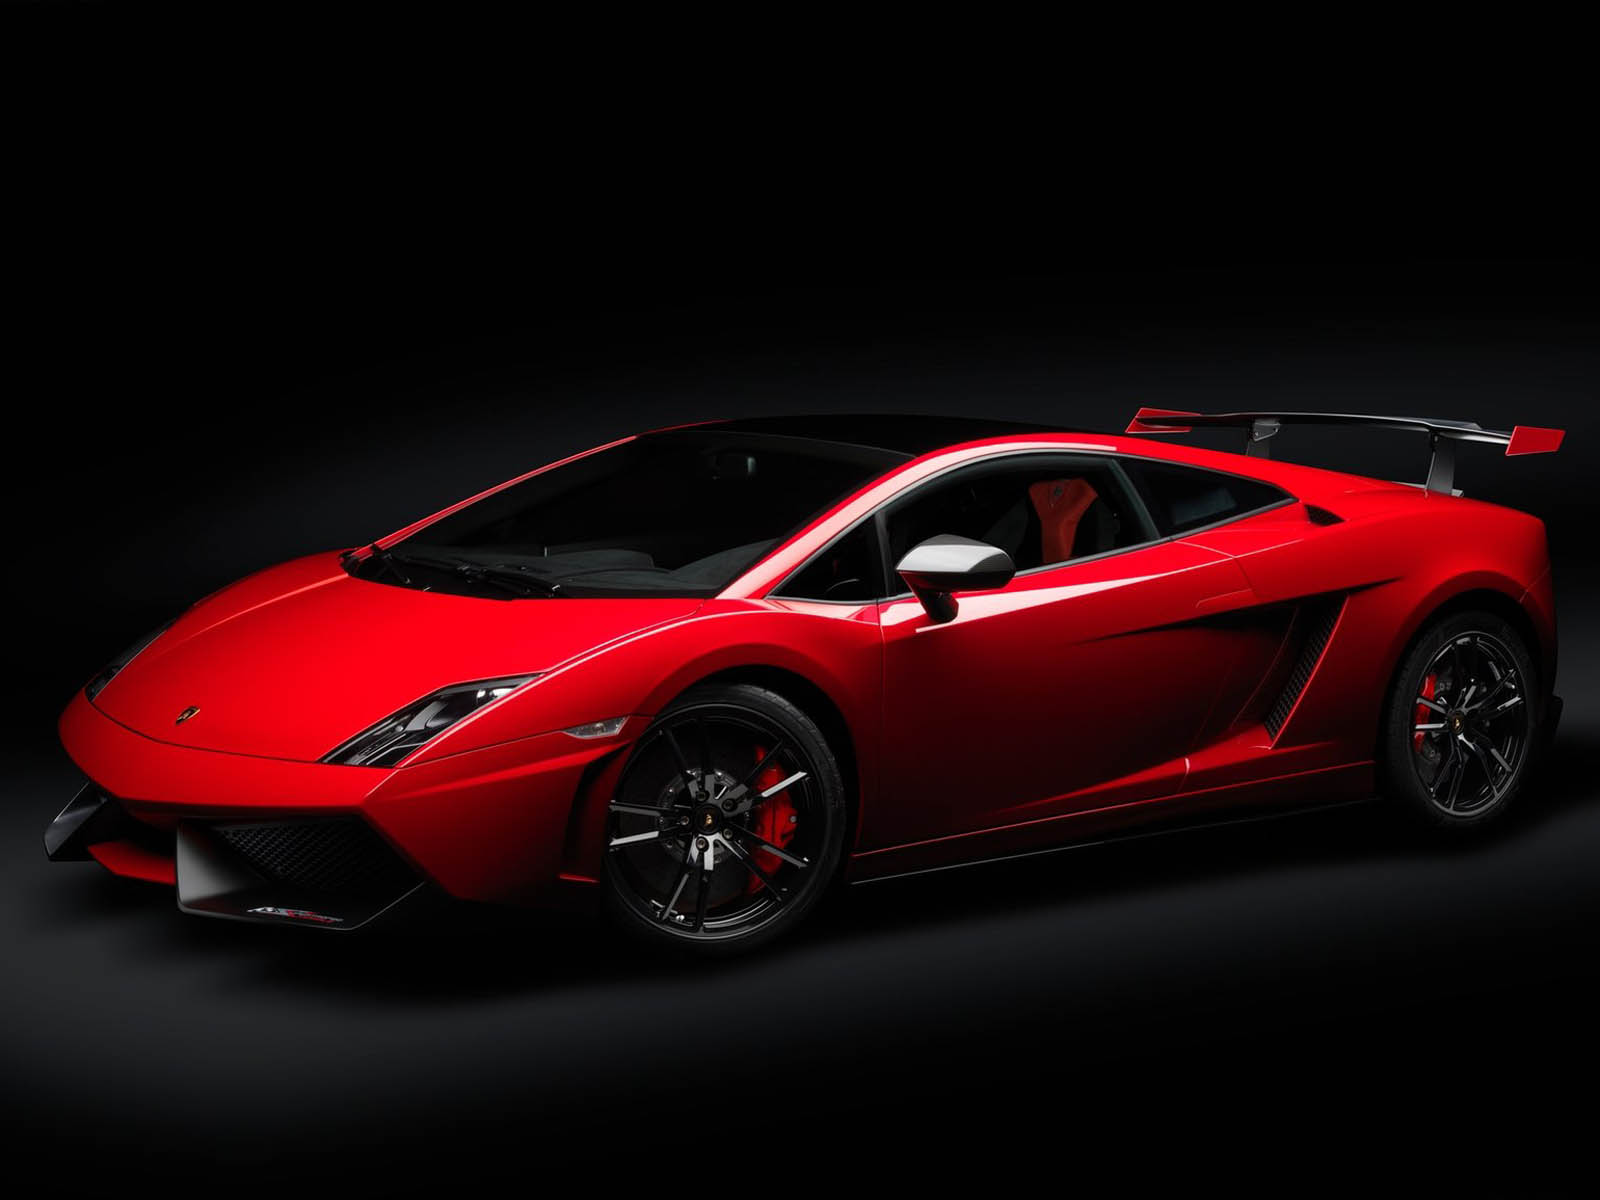 Red Lamborghini Wallpaper 4430 Hd Wallpapers in Cars   Imagescicom 1600x1200